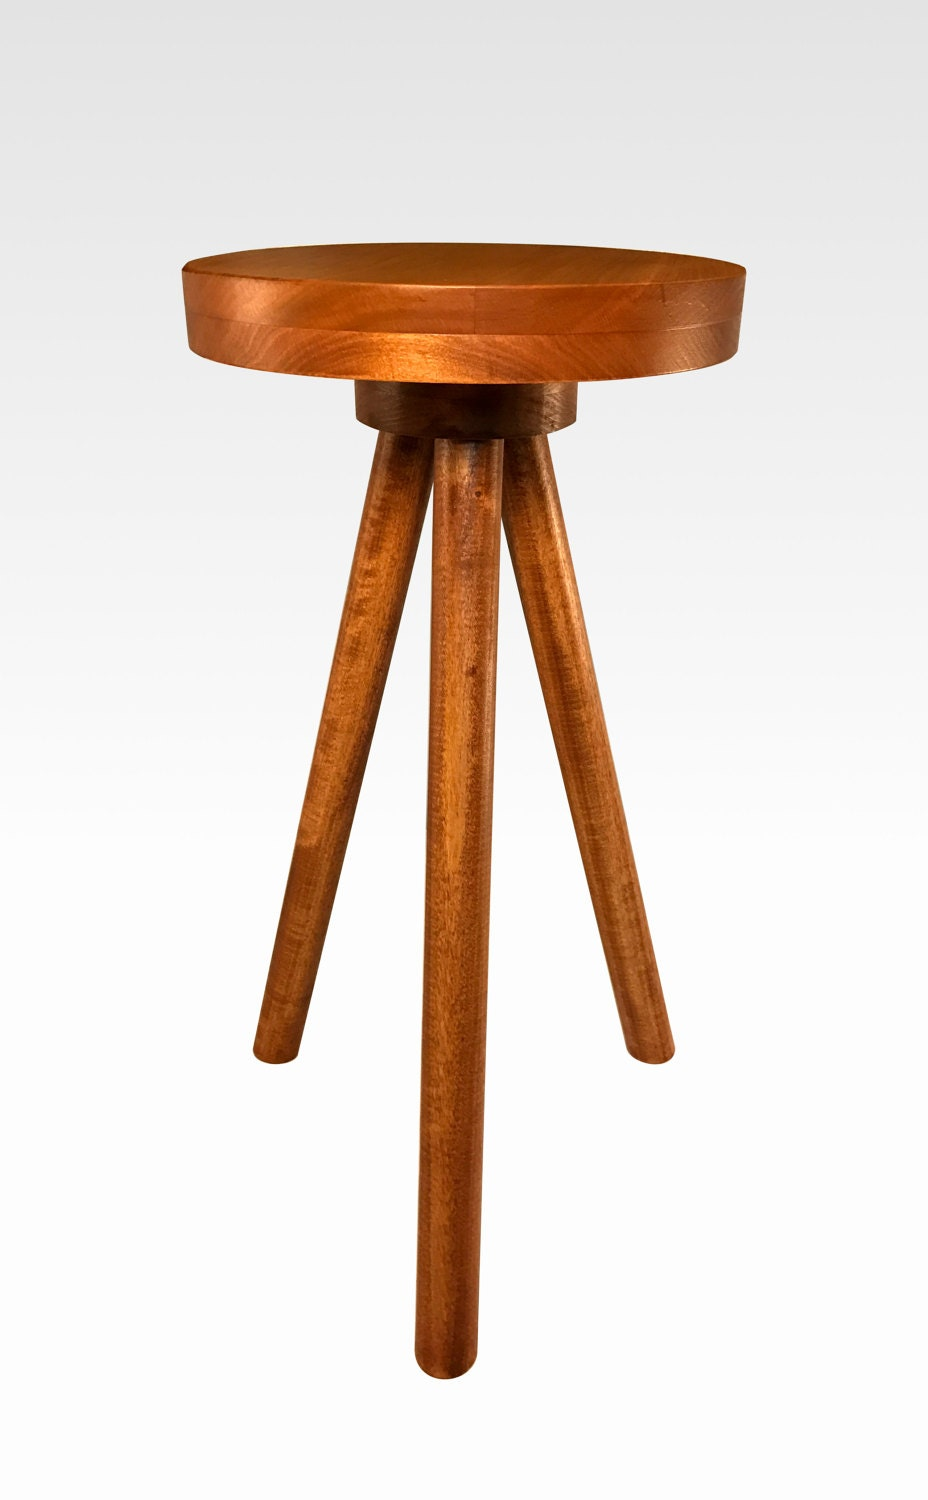 Modern Side Table In Cherry By Candlewood Furniture End Table Bar Stool Bedside Table Nightstand Wood Wooden Three Legged Table